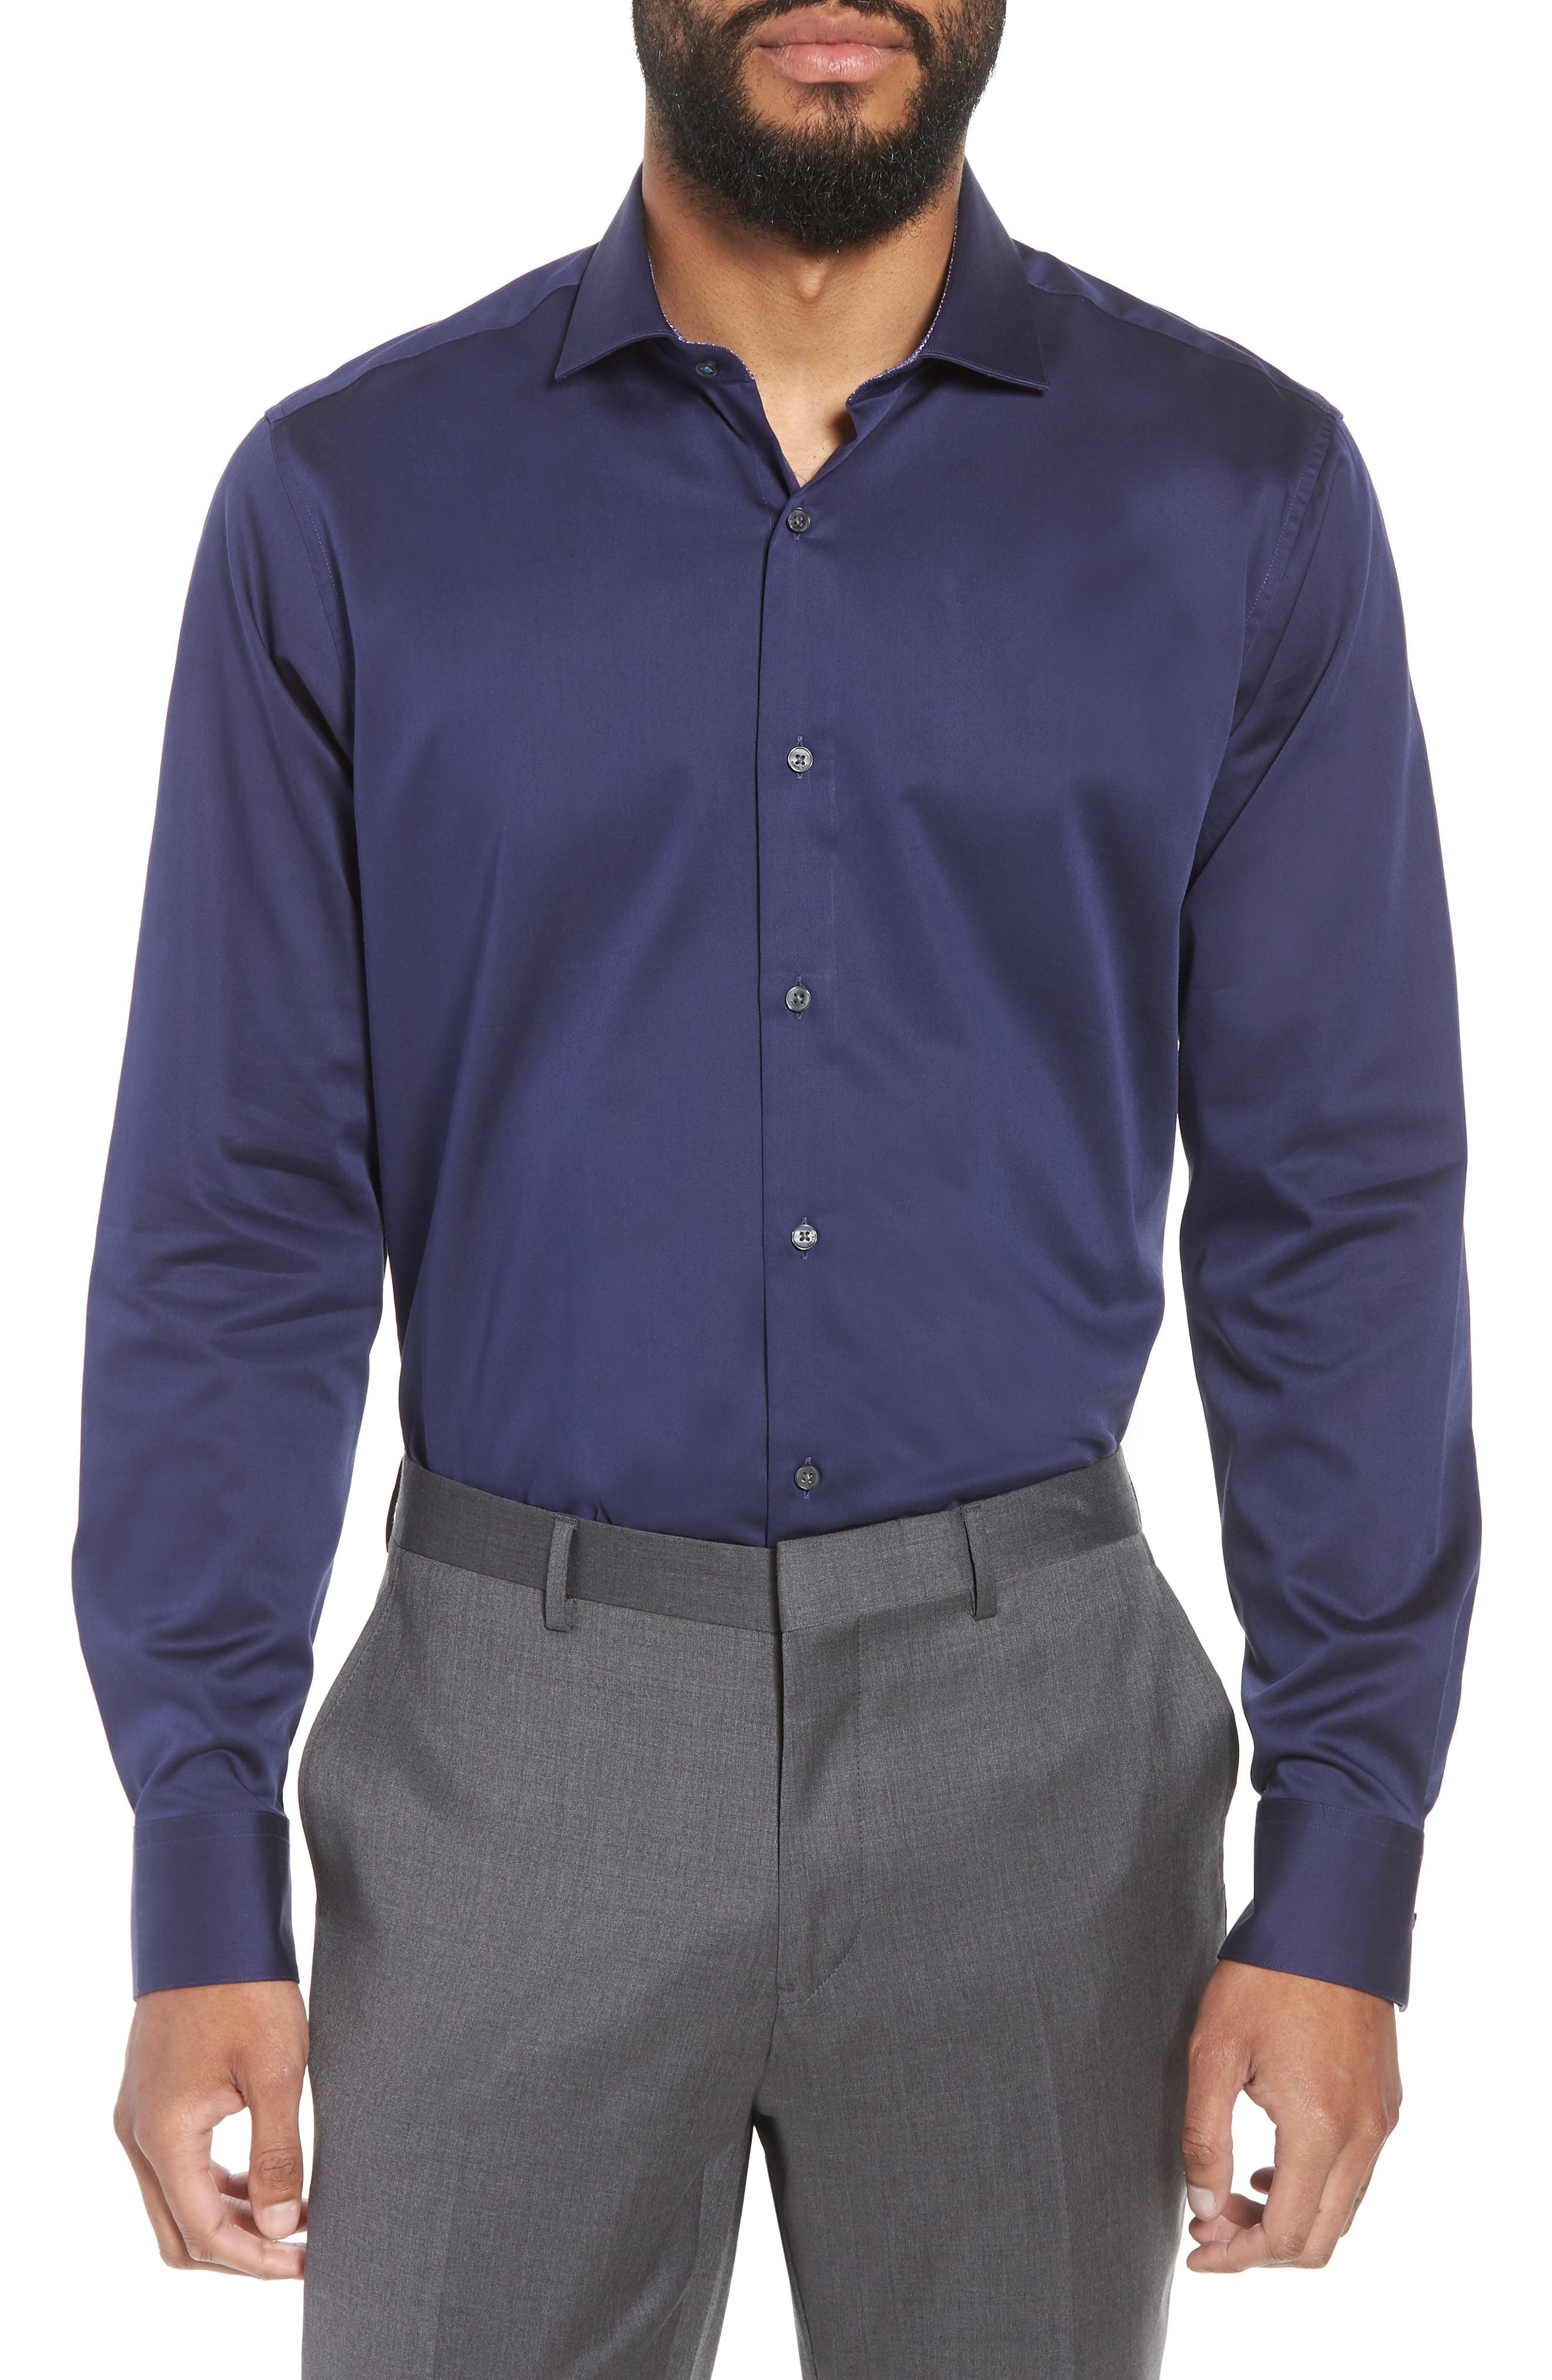 Endurance Bookers Slim Fit Solid Dress Shirt,                         Main,                         color, Navy